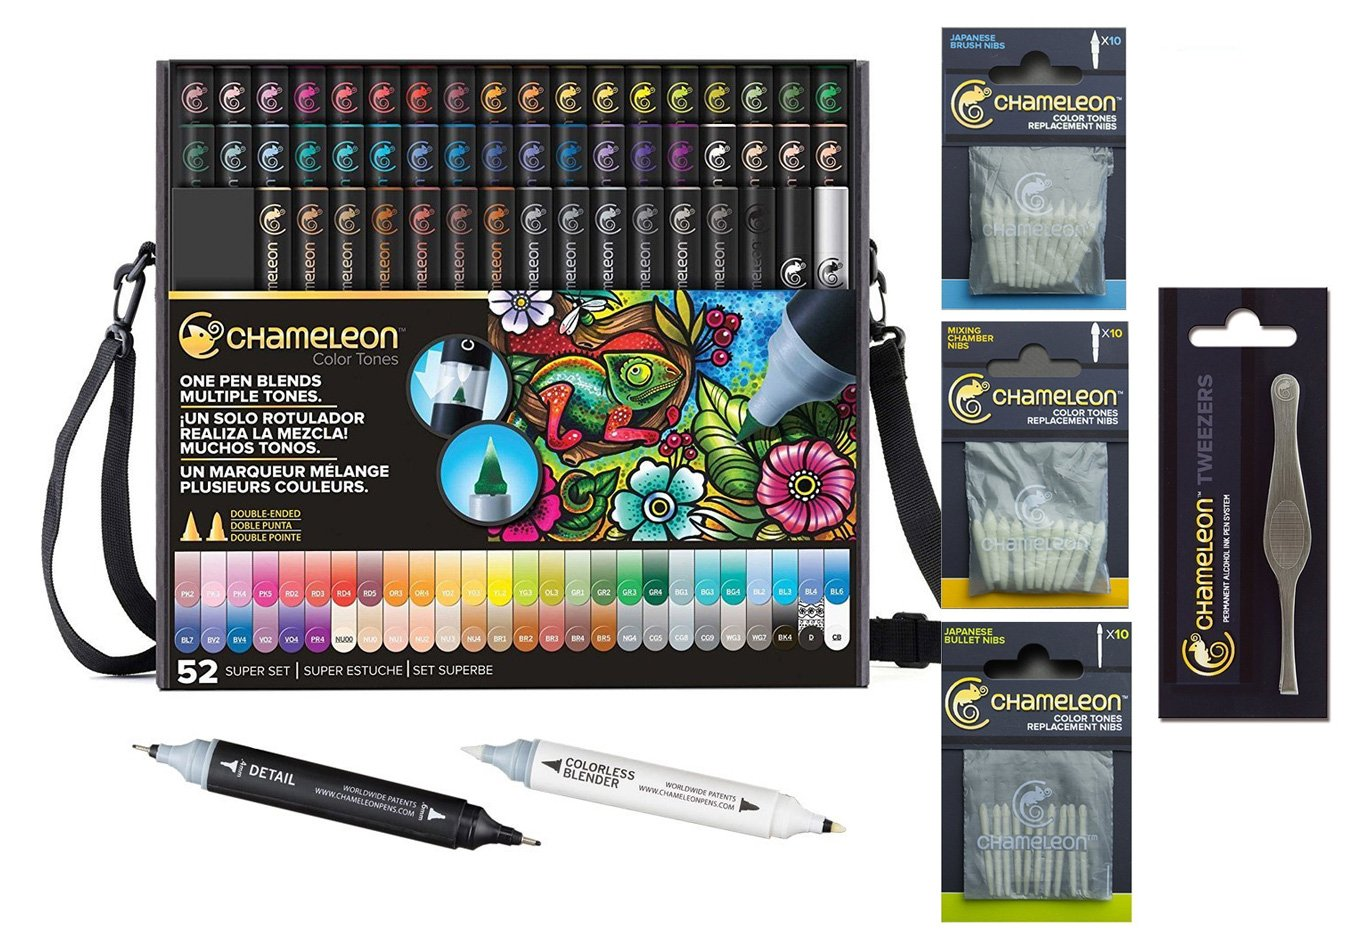 Chameleon Deluxe Bundle 52-Pen Set with Case, Extra Blender, Extra Detail Pen and 4 Packs of Color Cards